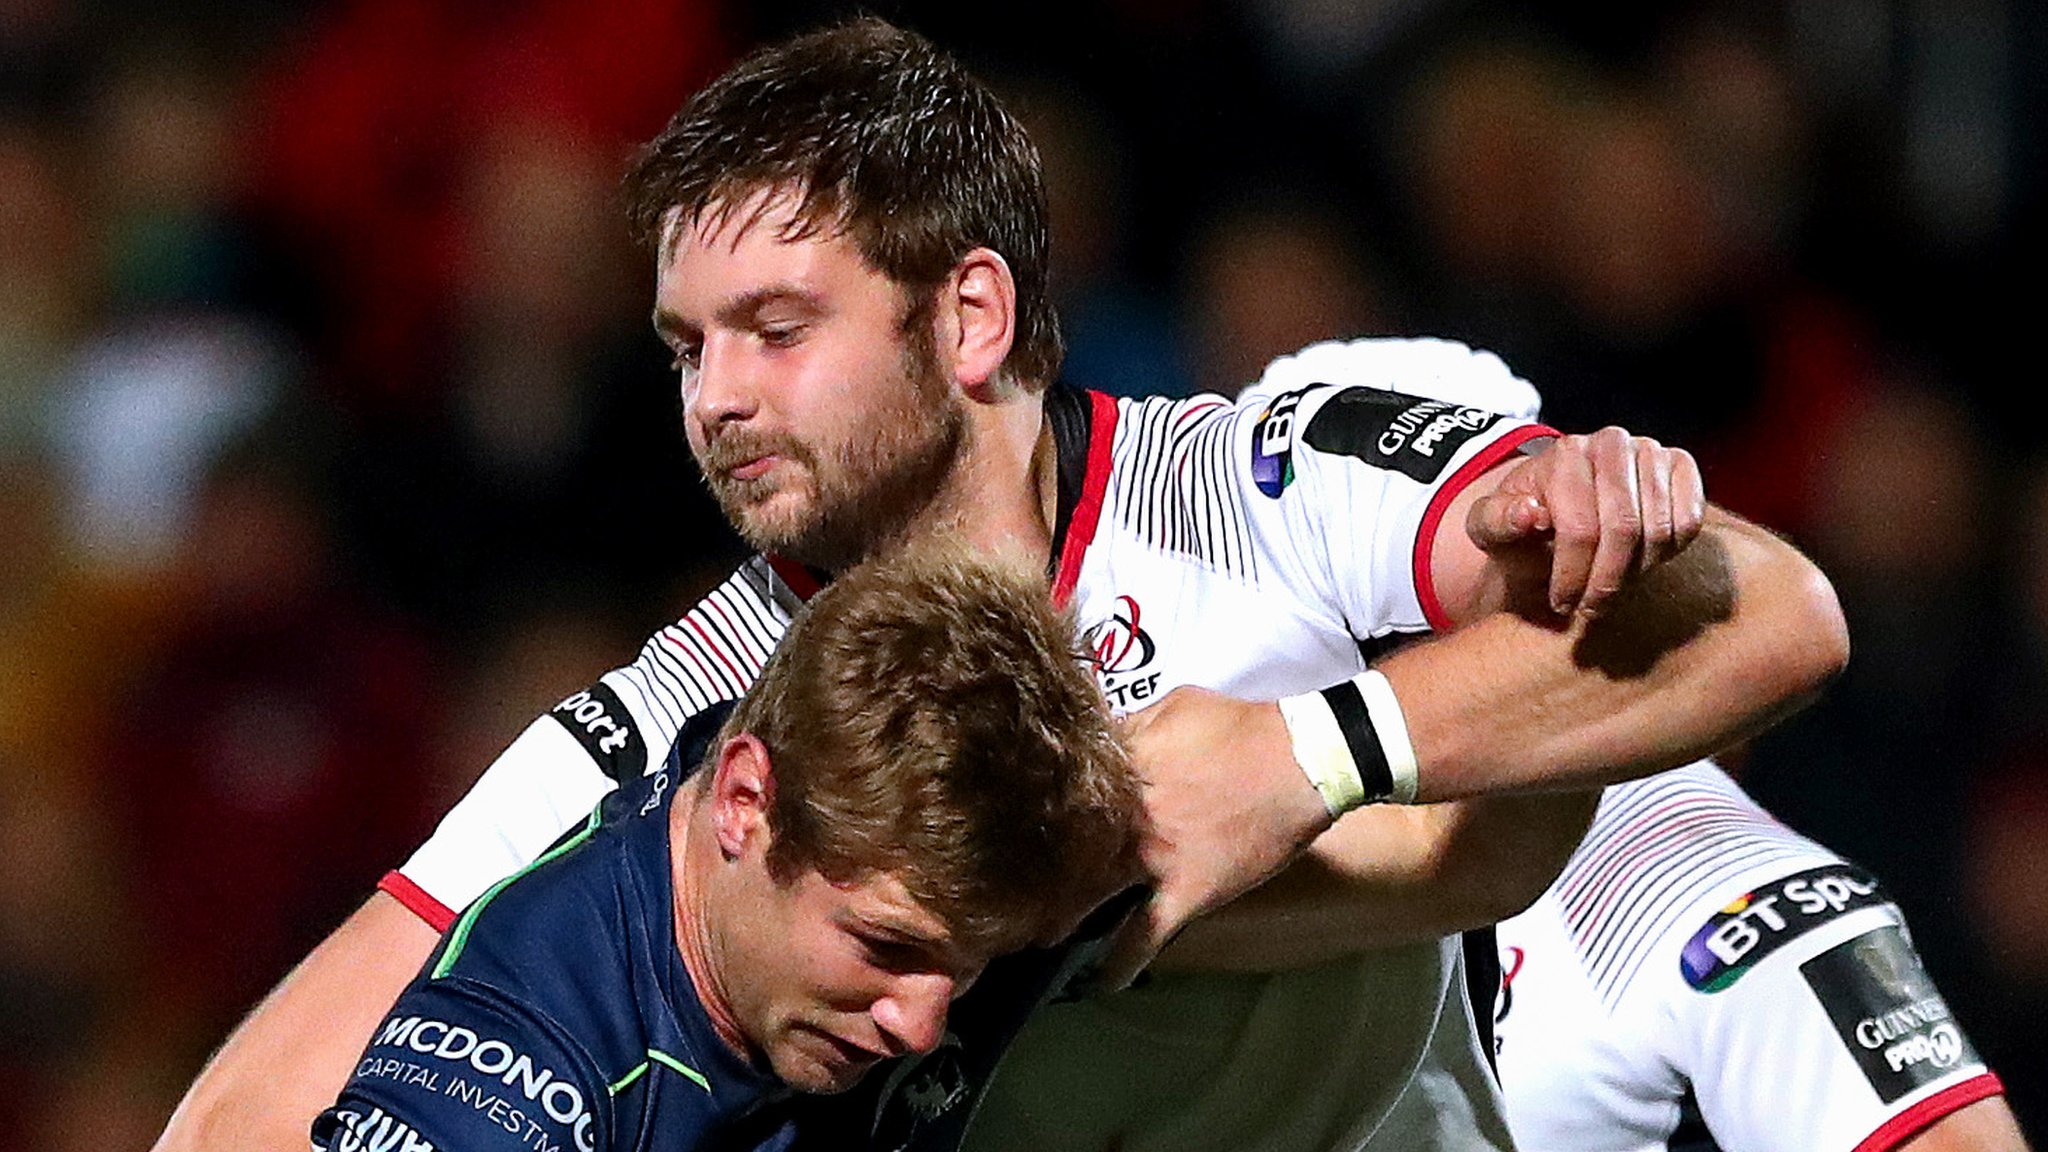 Ulster Pro14 quarter-final set for 4 May